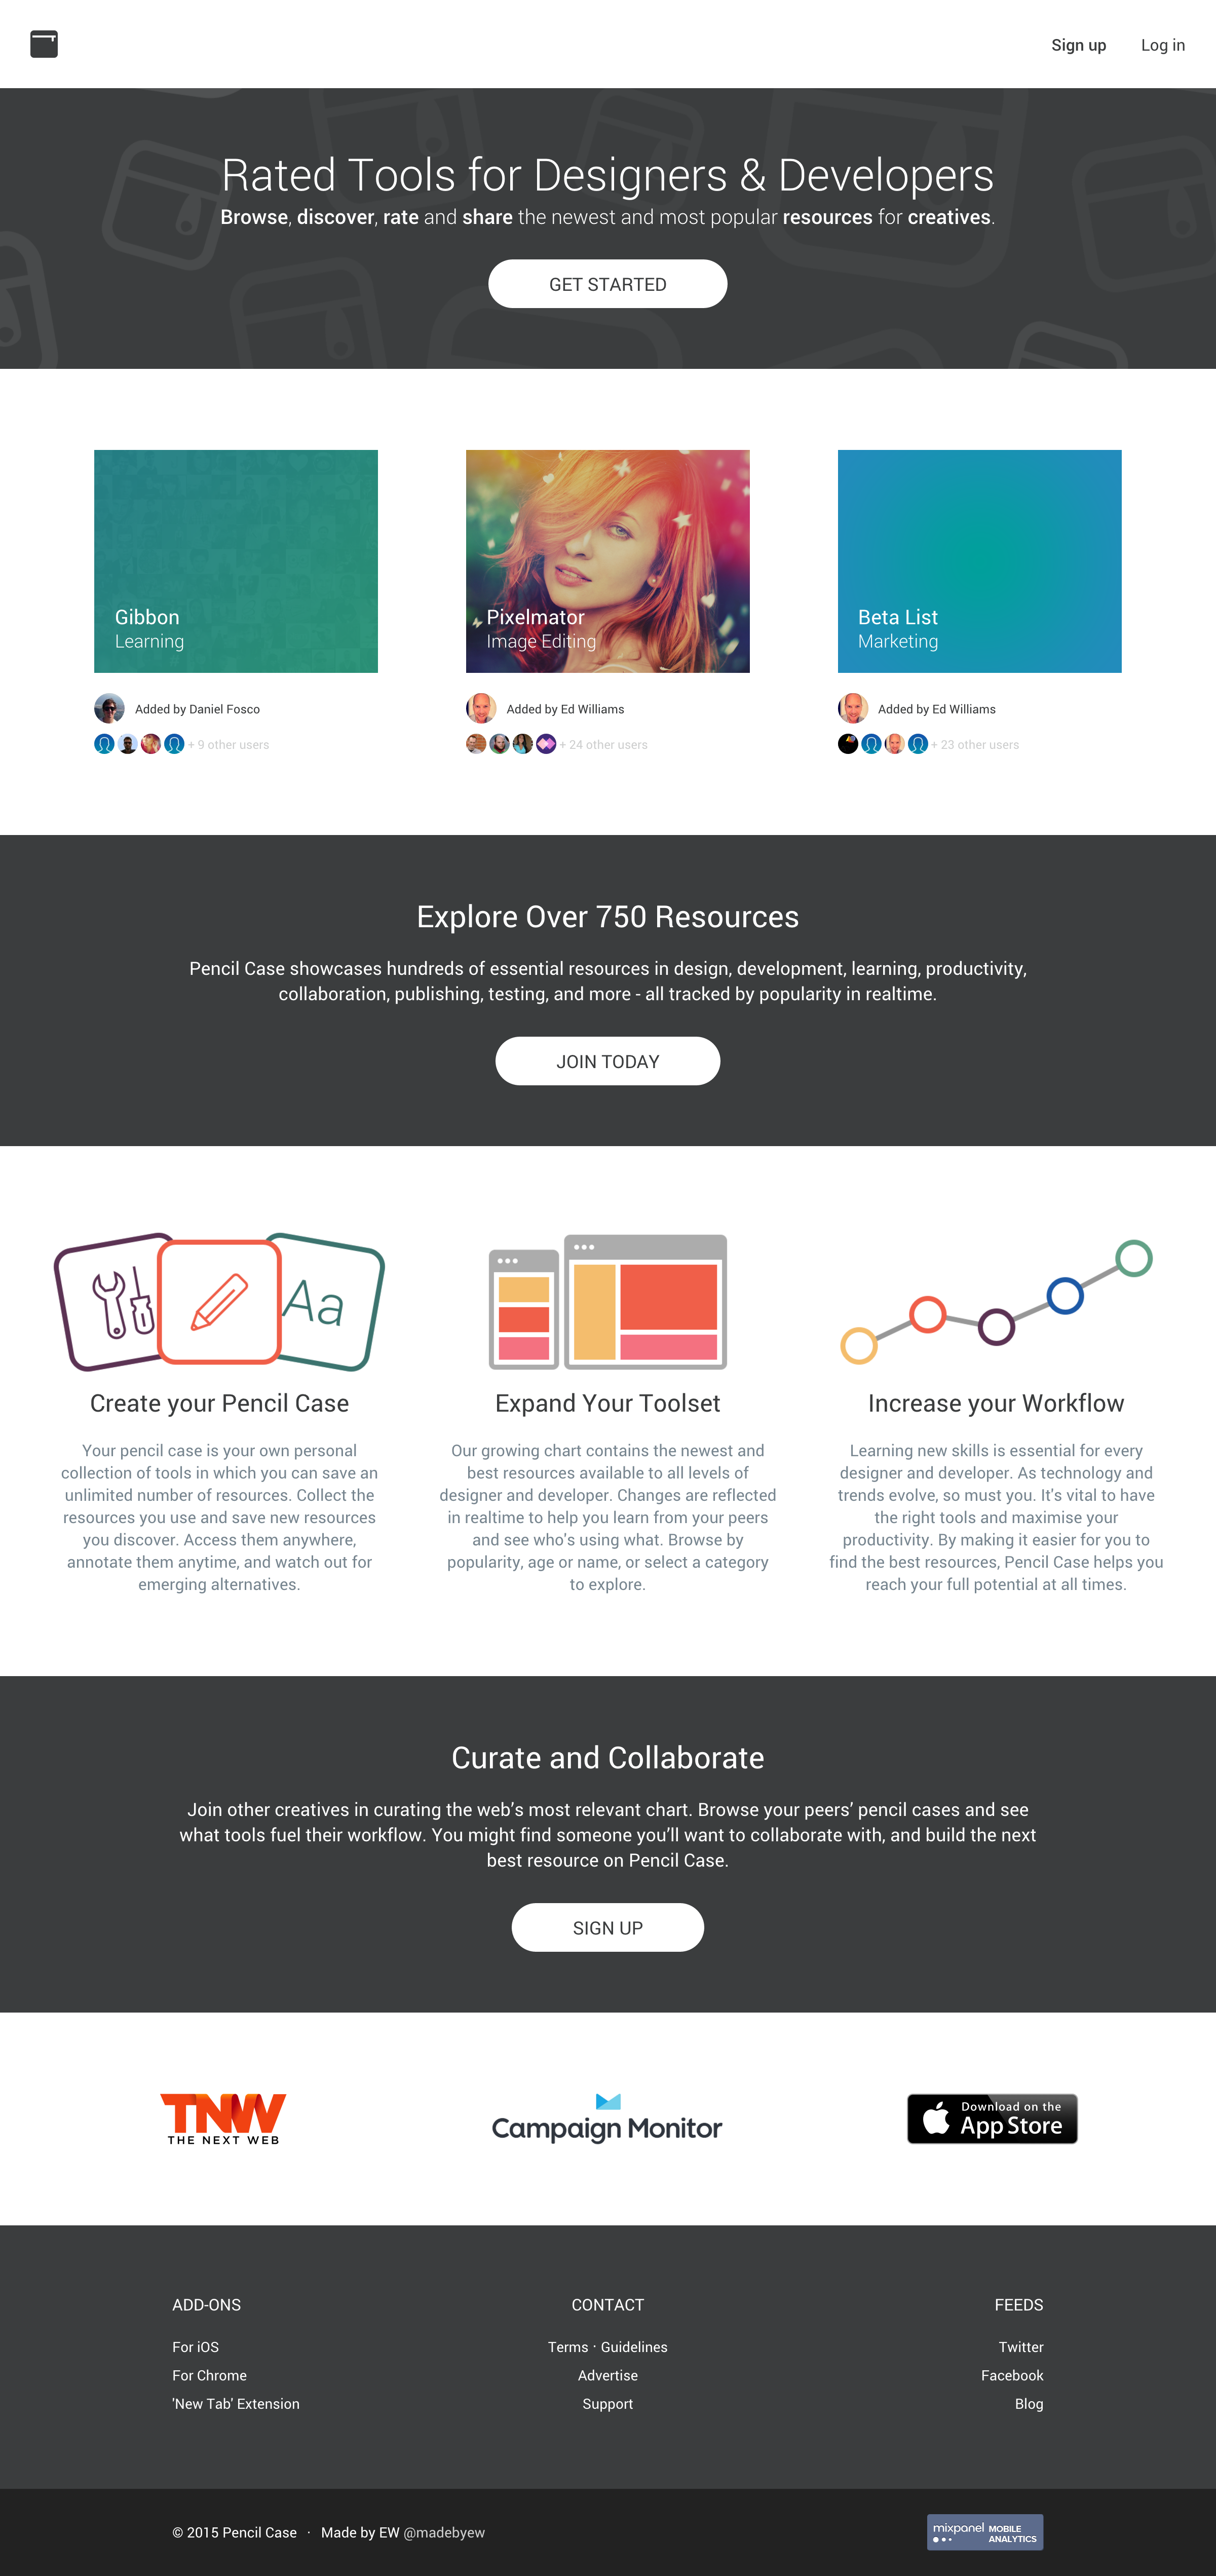 Pencil case landing page full